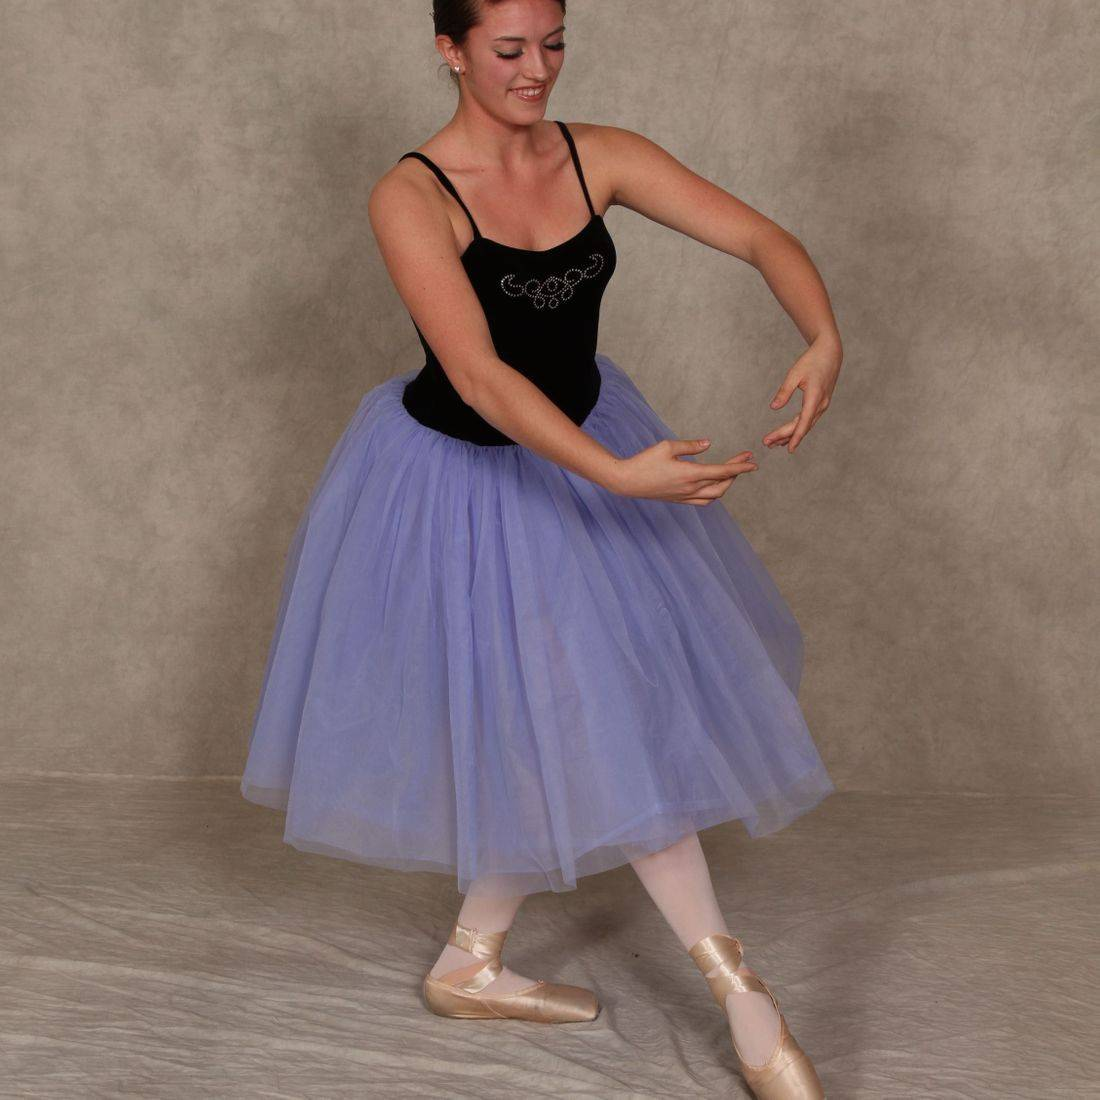 Love this sweet ballet dancer, who has gone on to be a great leader!